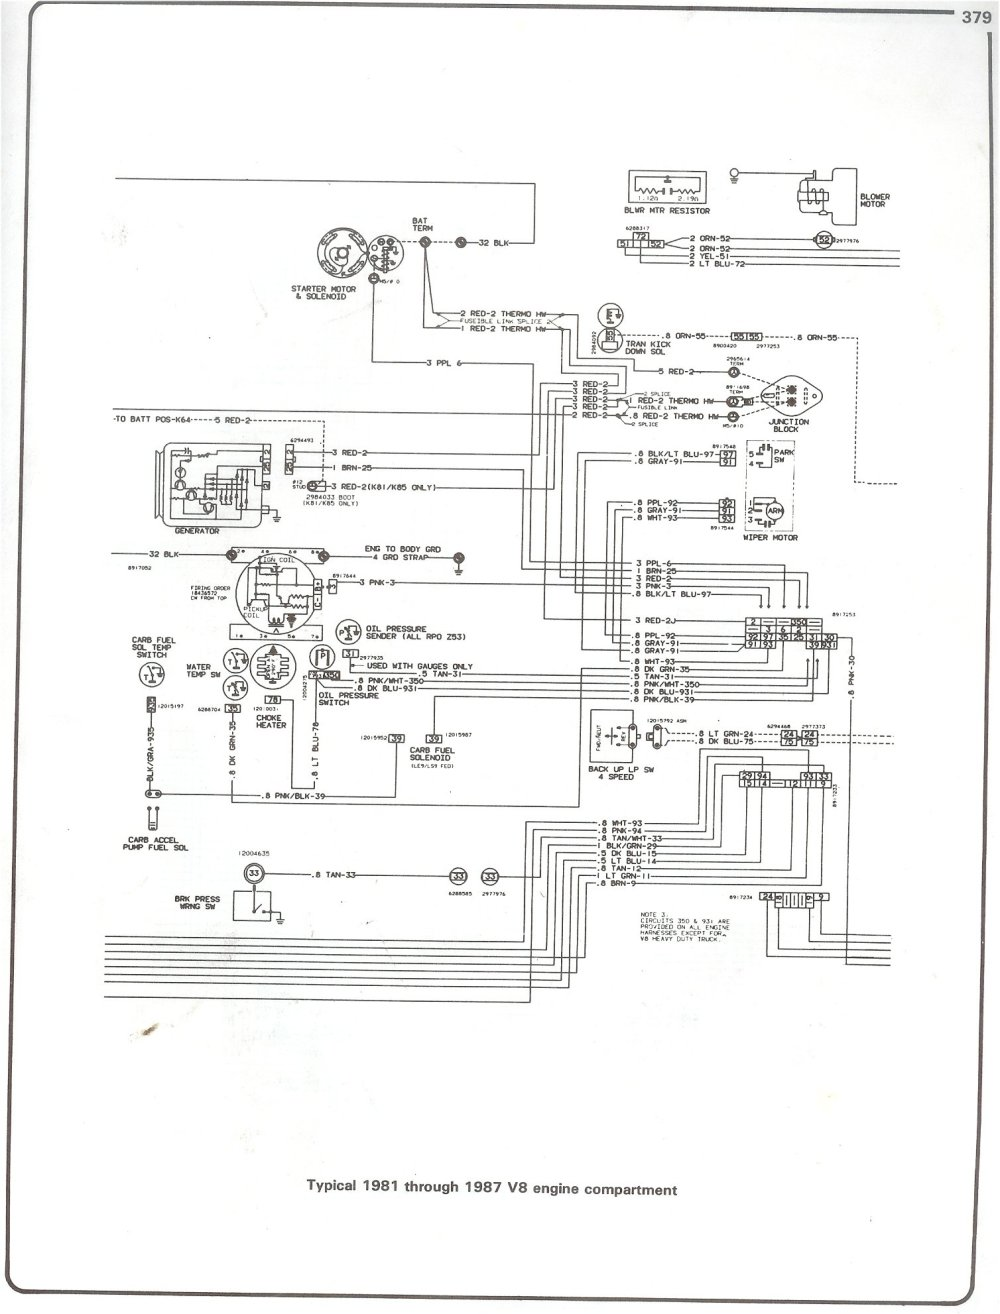 medium resolution of complete 73 87 wiring diagrams 1995 chevy astro fuse box location 2000 astro fuse box location